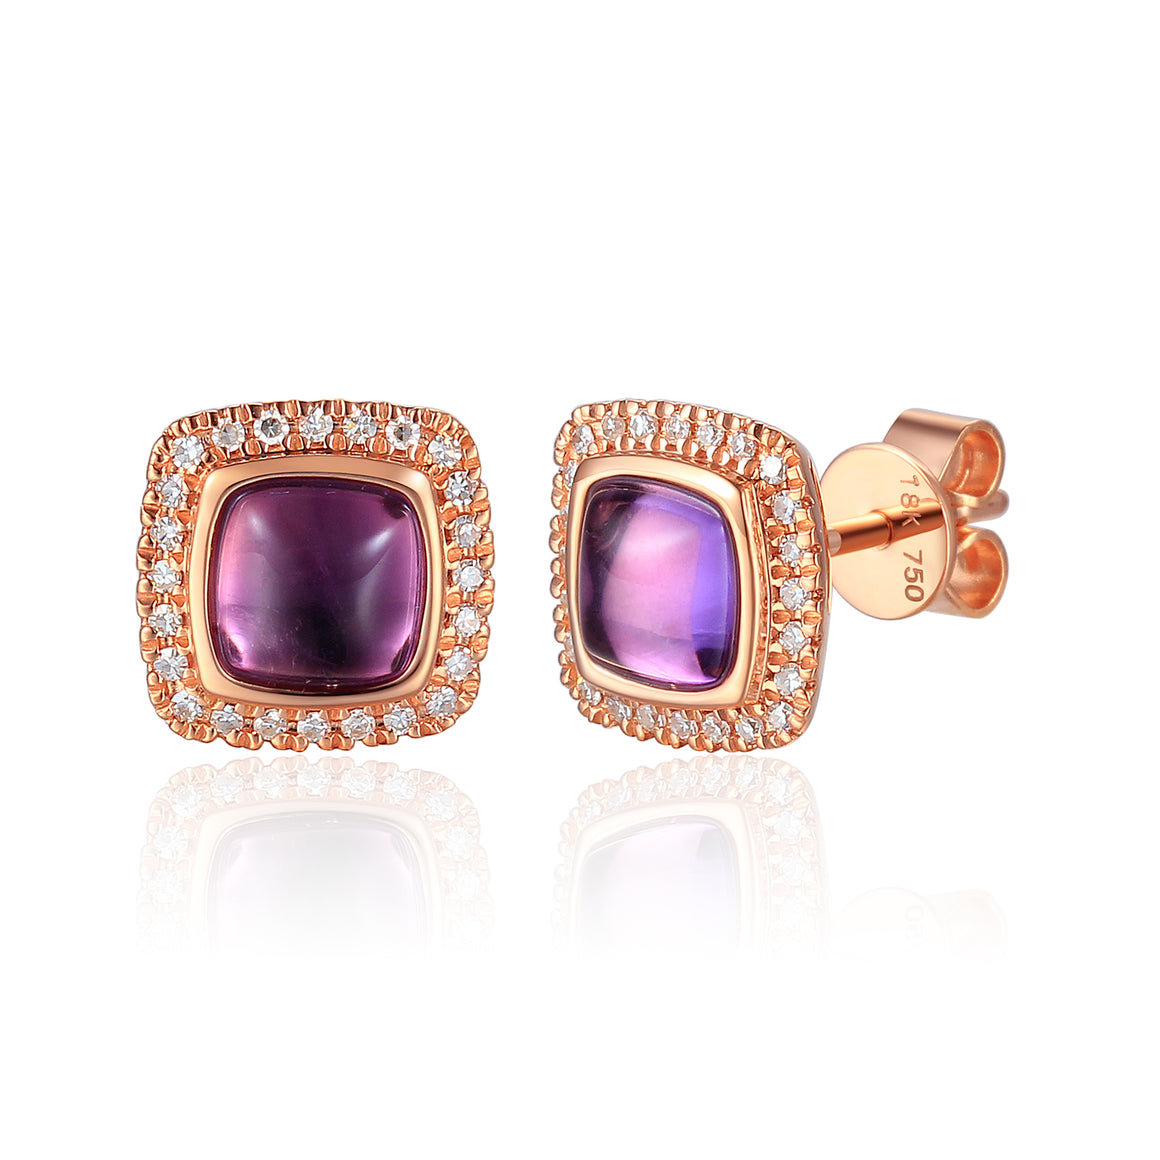 18ct Rose Gold Cabuchon Cushion Amethyst and Diamond Earring